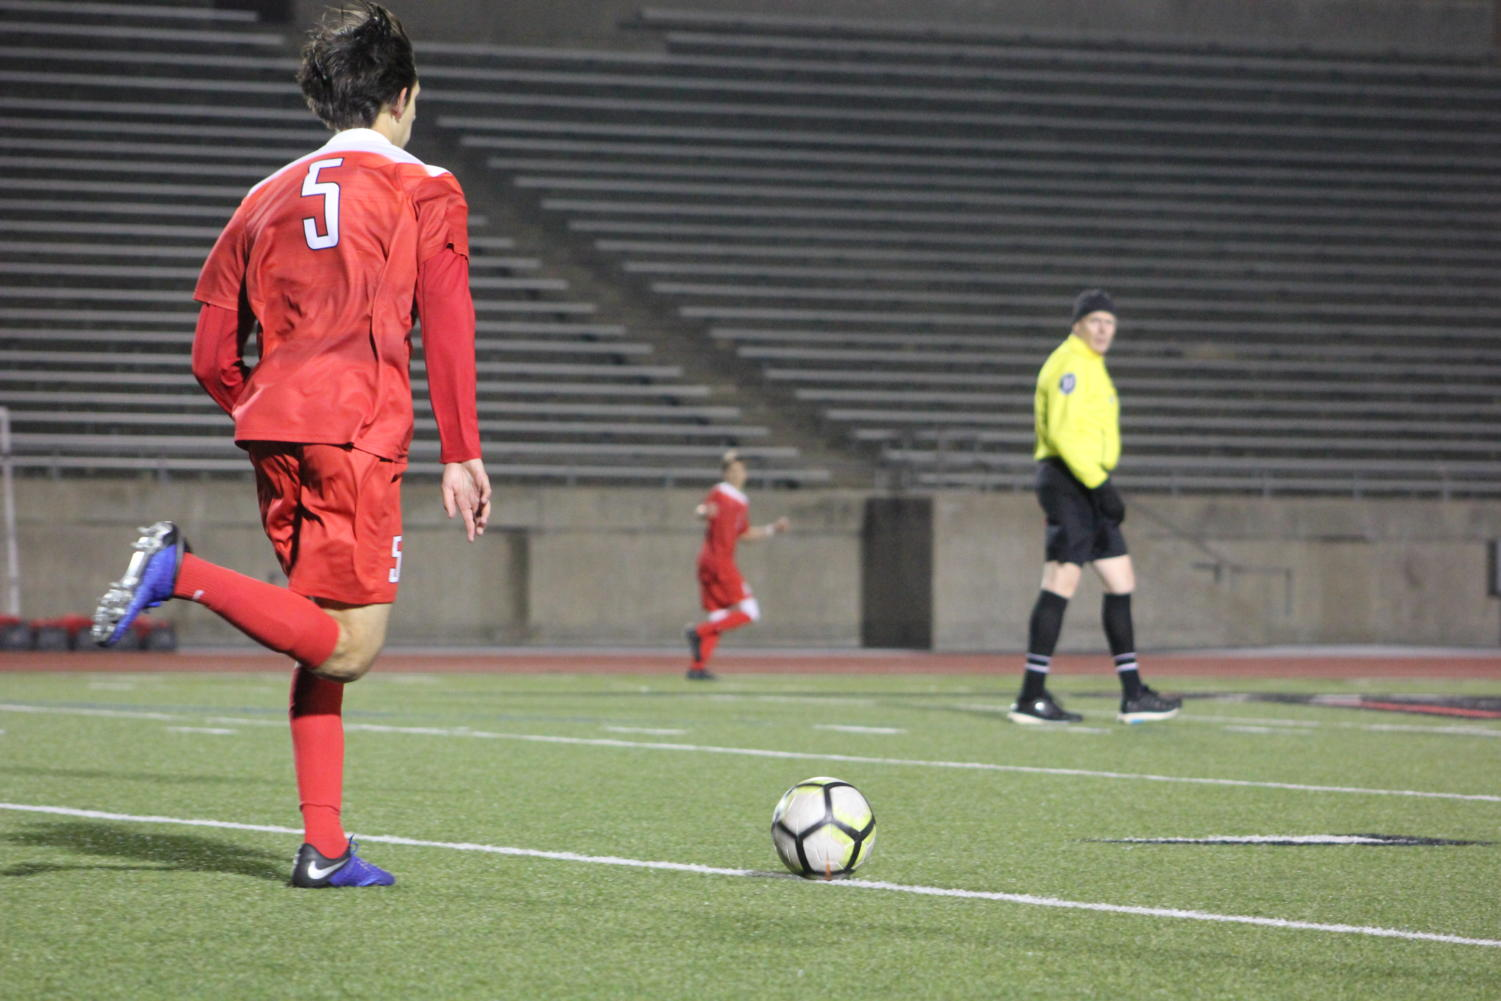 Coppell junior Nathan Hernandez dribbles upfield during a match against McKinney Boyd, at Buddy Echols Field. The Cowboys will play against Falcons tomorrow at 7:30 p.m. at Buddy Echols Field.